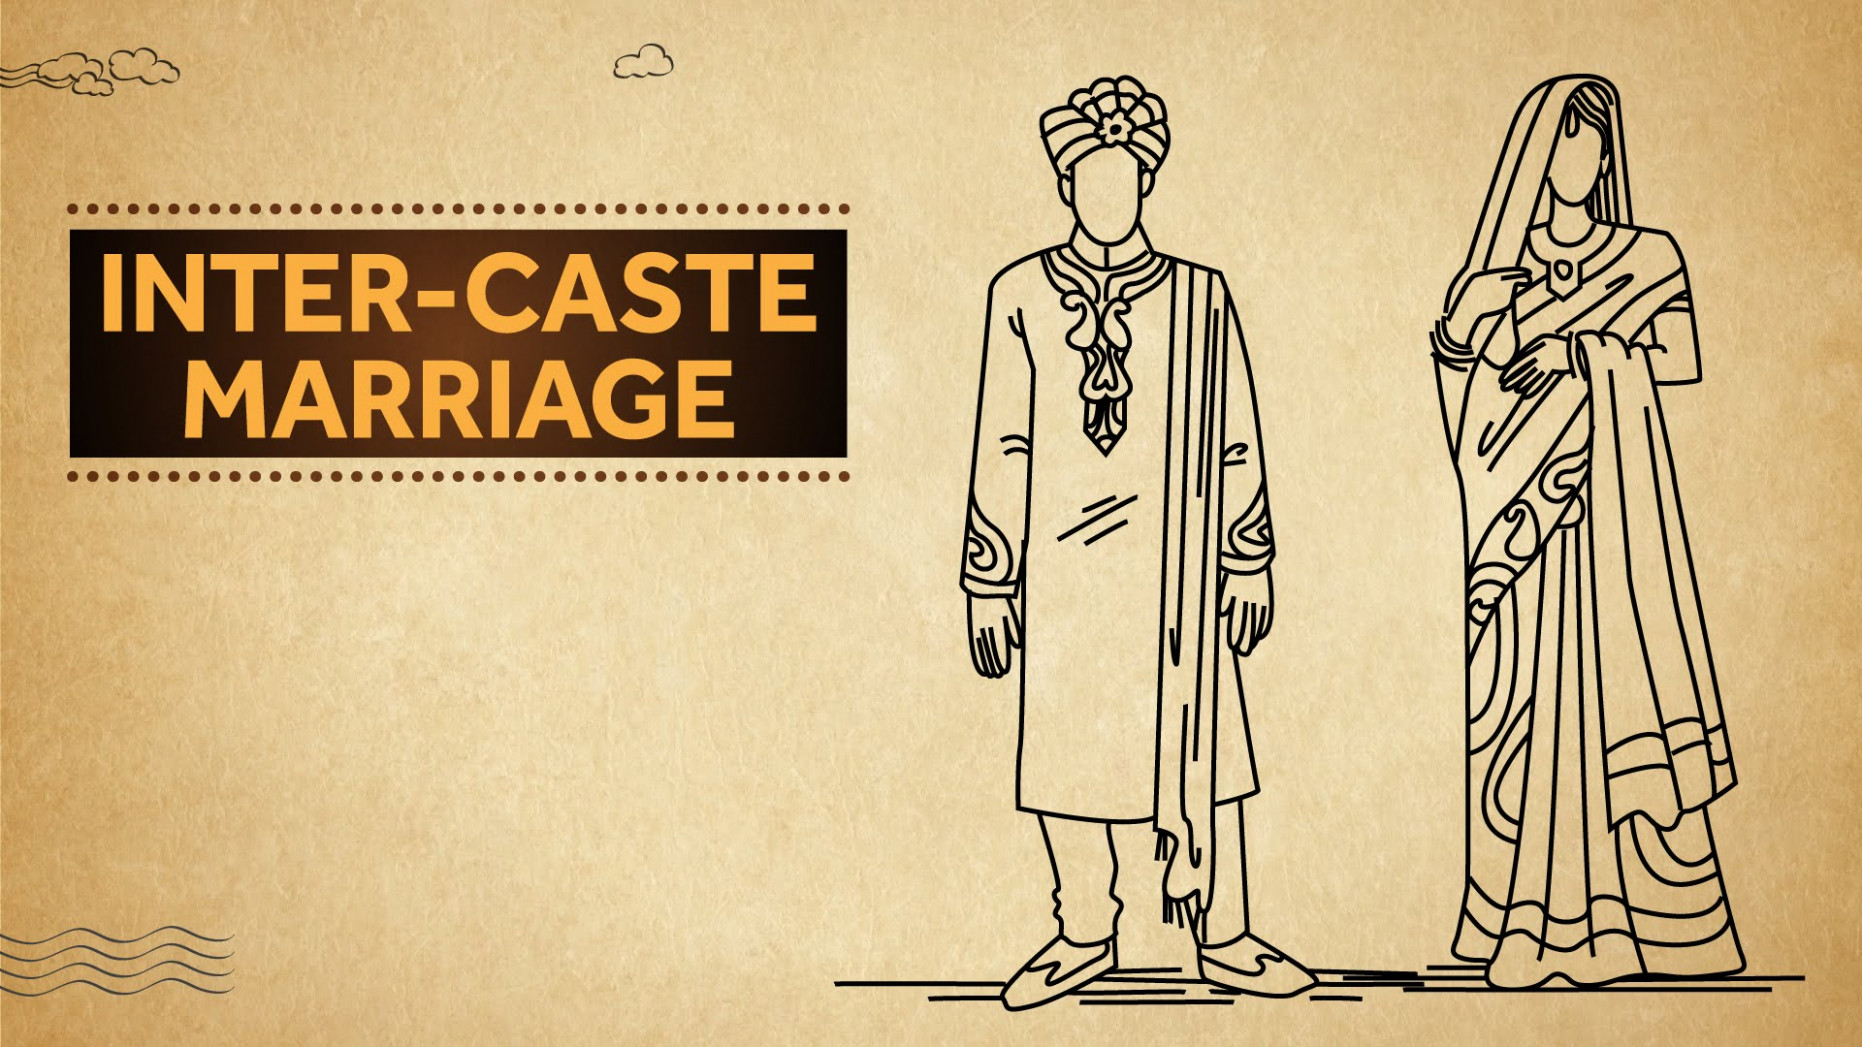 Intercaste Marriage - Legal News / Law News & Articles ...